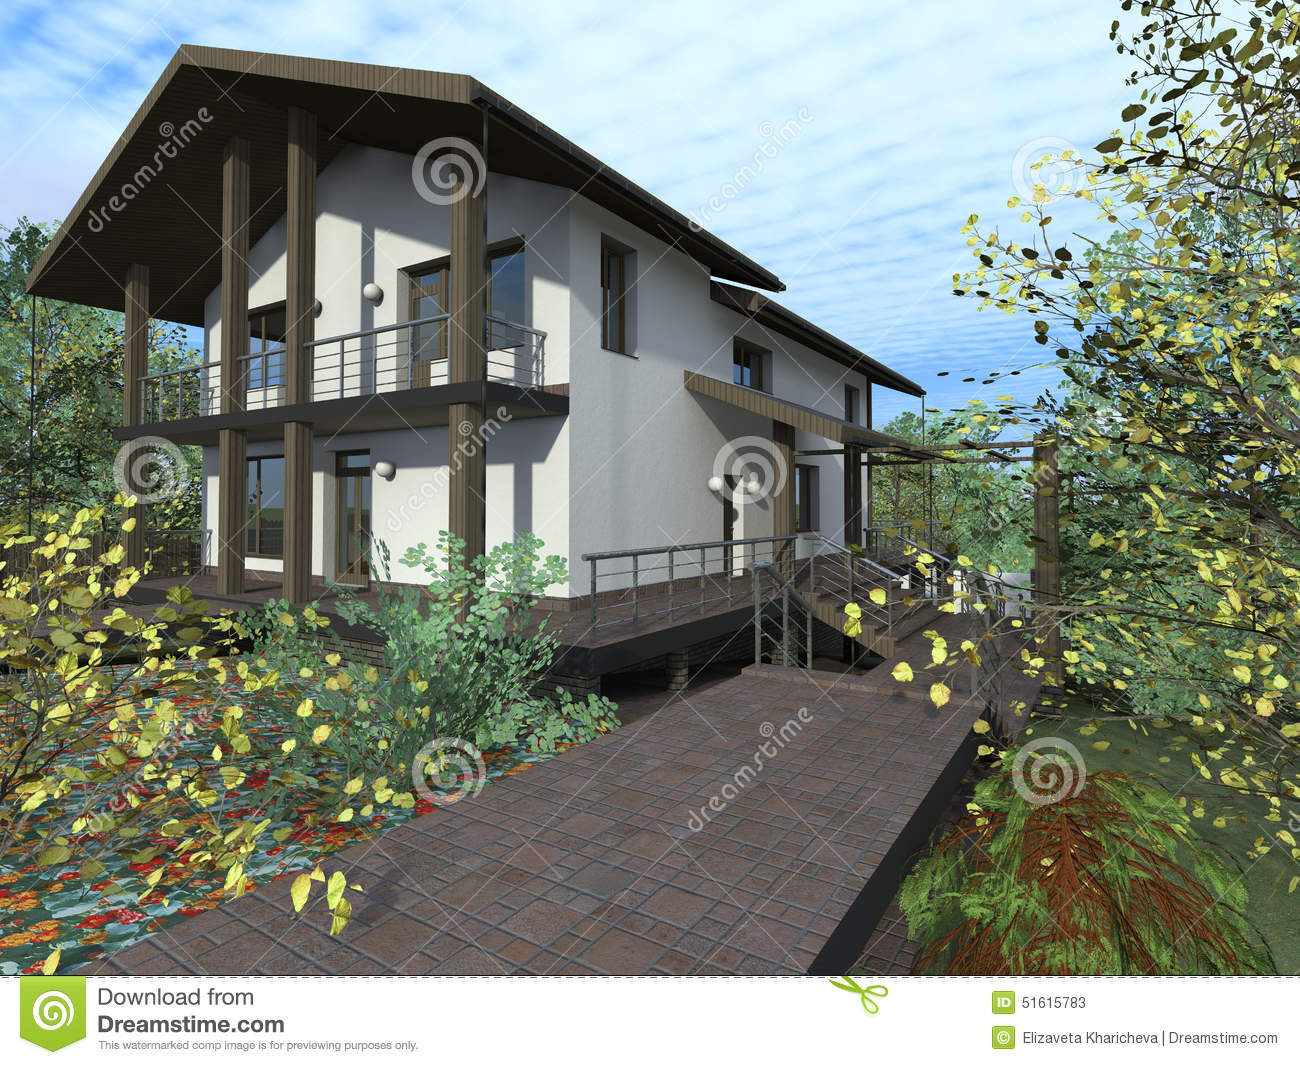 House with terrace and balcony stock illustration image for Balcony terrace